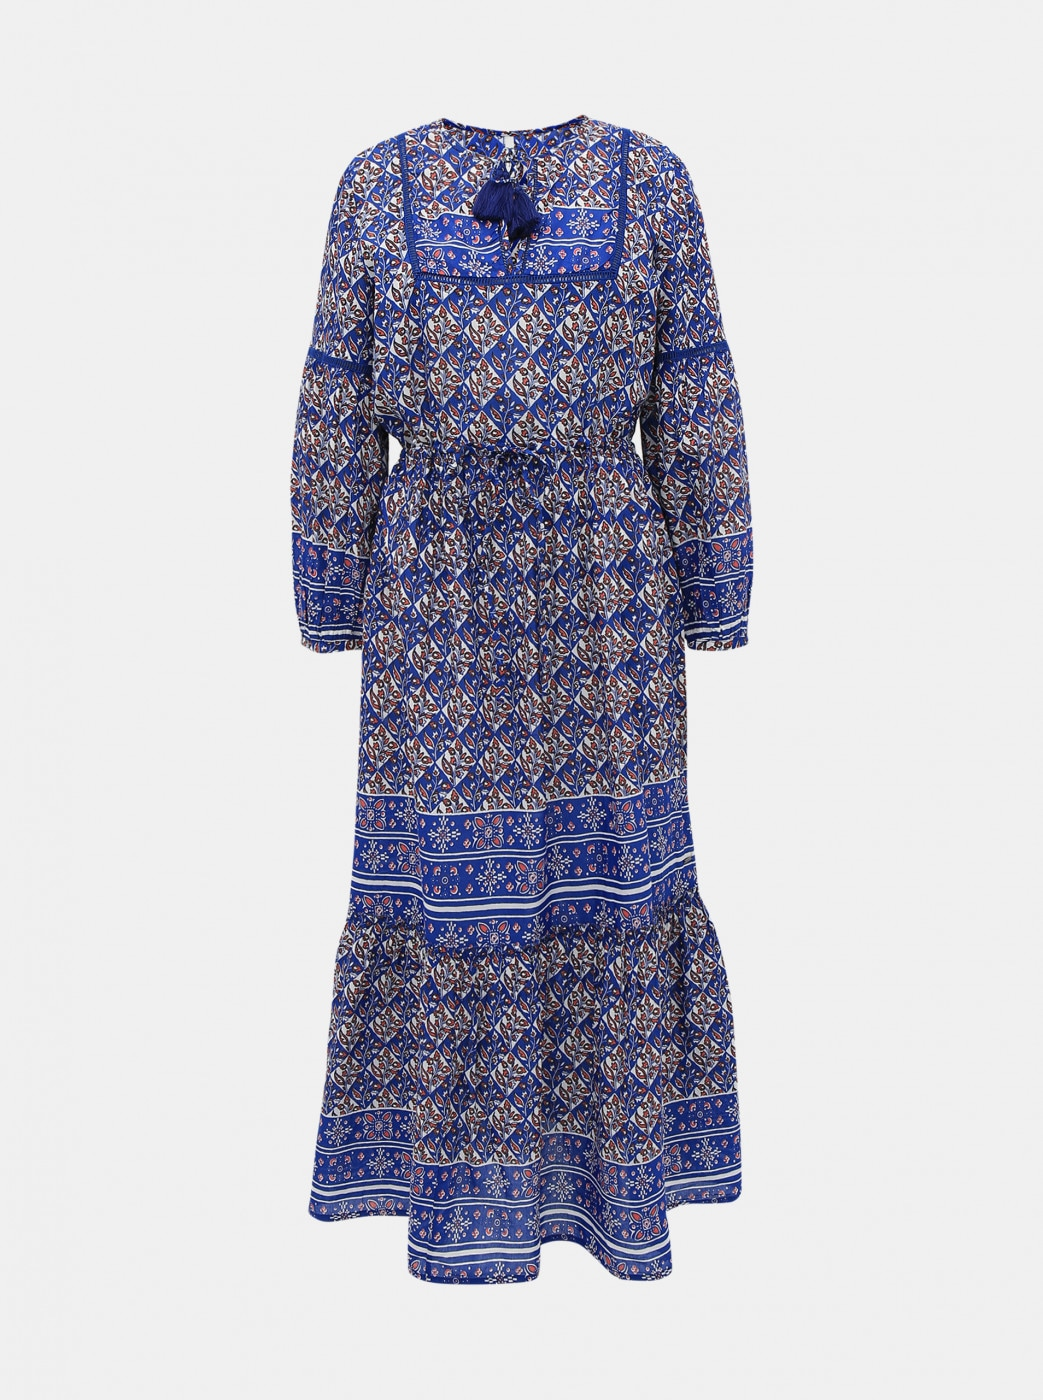 Dark Blue Patterned Maxi dress Pepe Jeans Norma